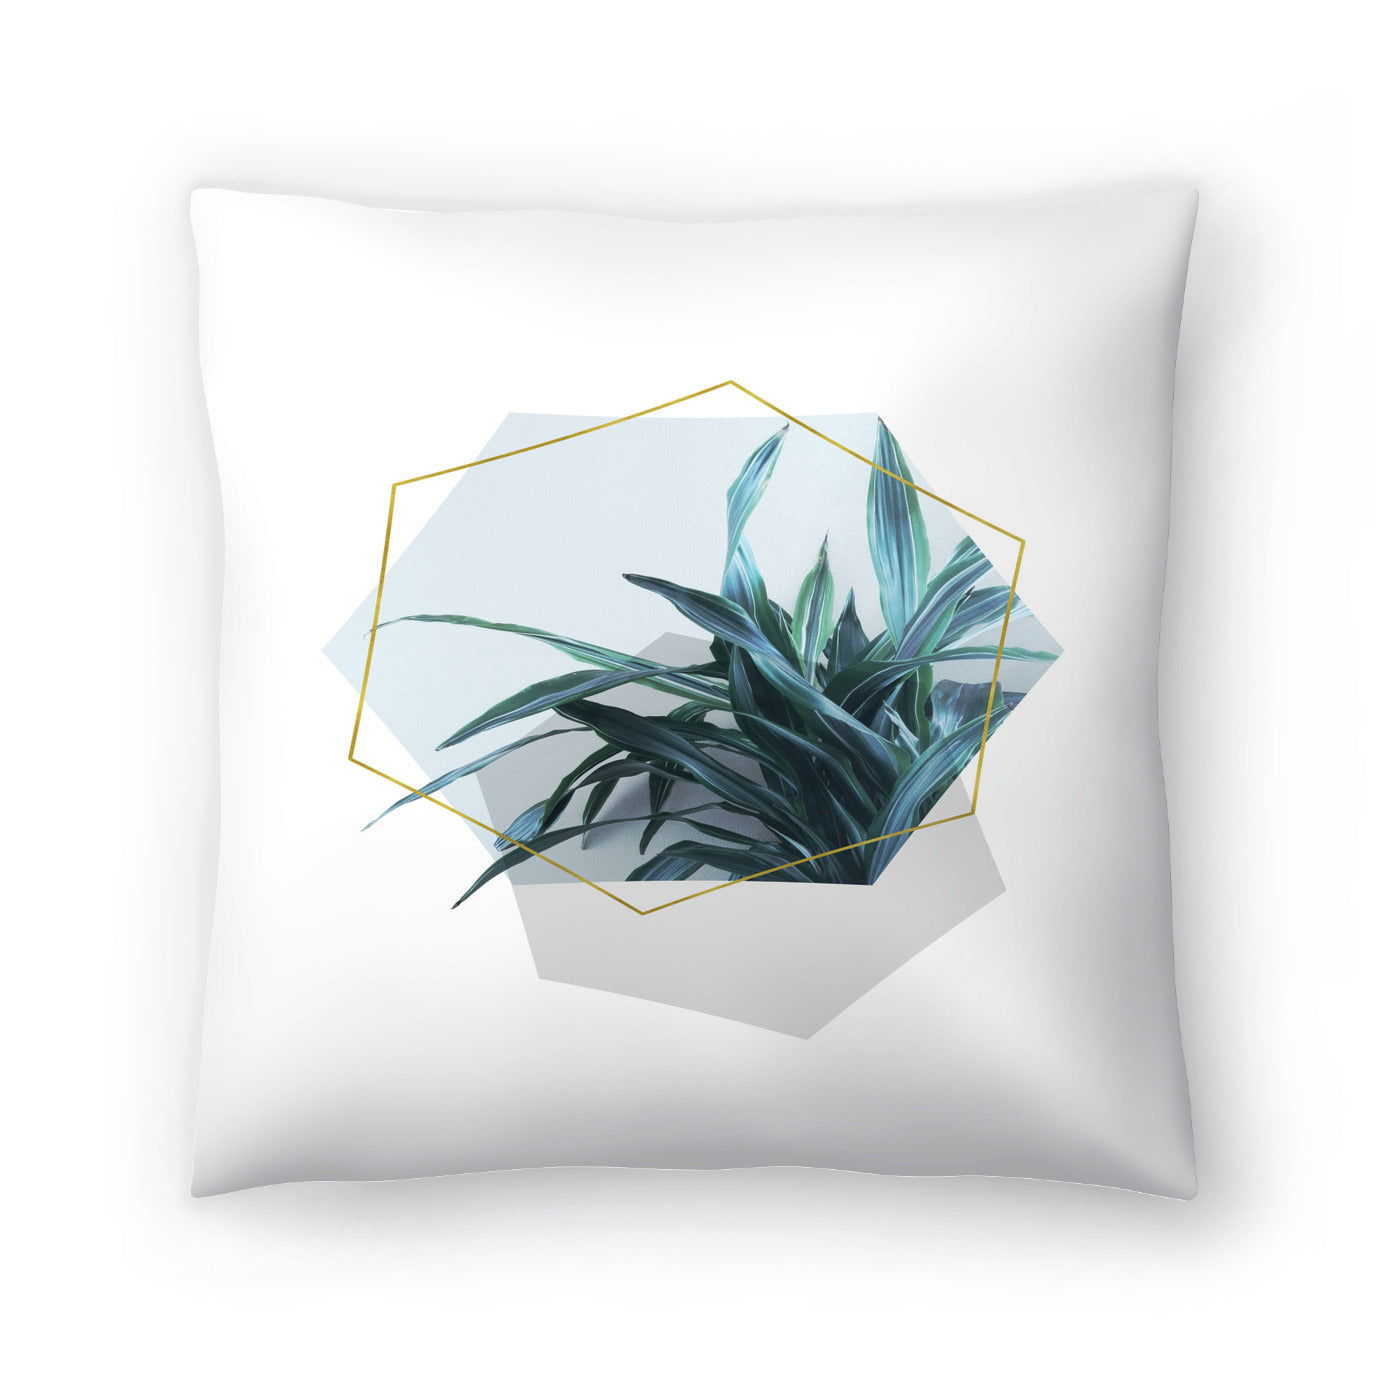 Leaves Geometry by Emanuela Carratoni Decorative Pillow - Decorative Pillow - Americanflat